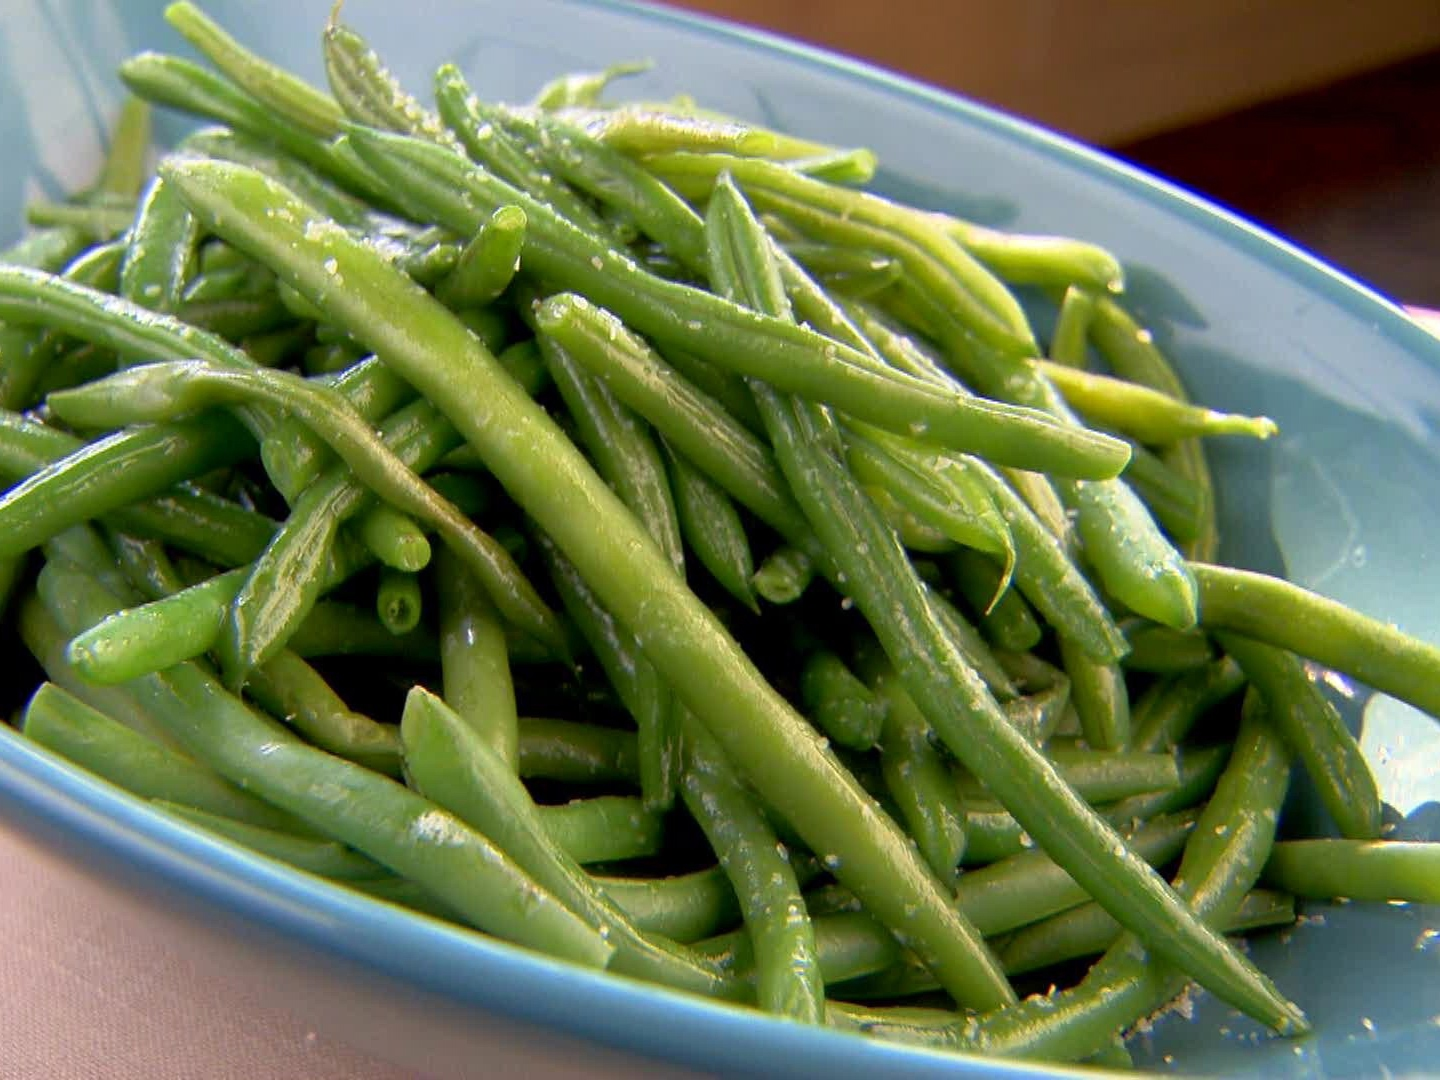 YW0203H_fresh-green-beans-aka-tom-cruise-green-beans-recipe_s4x3